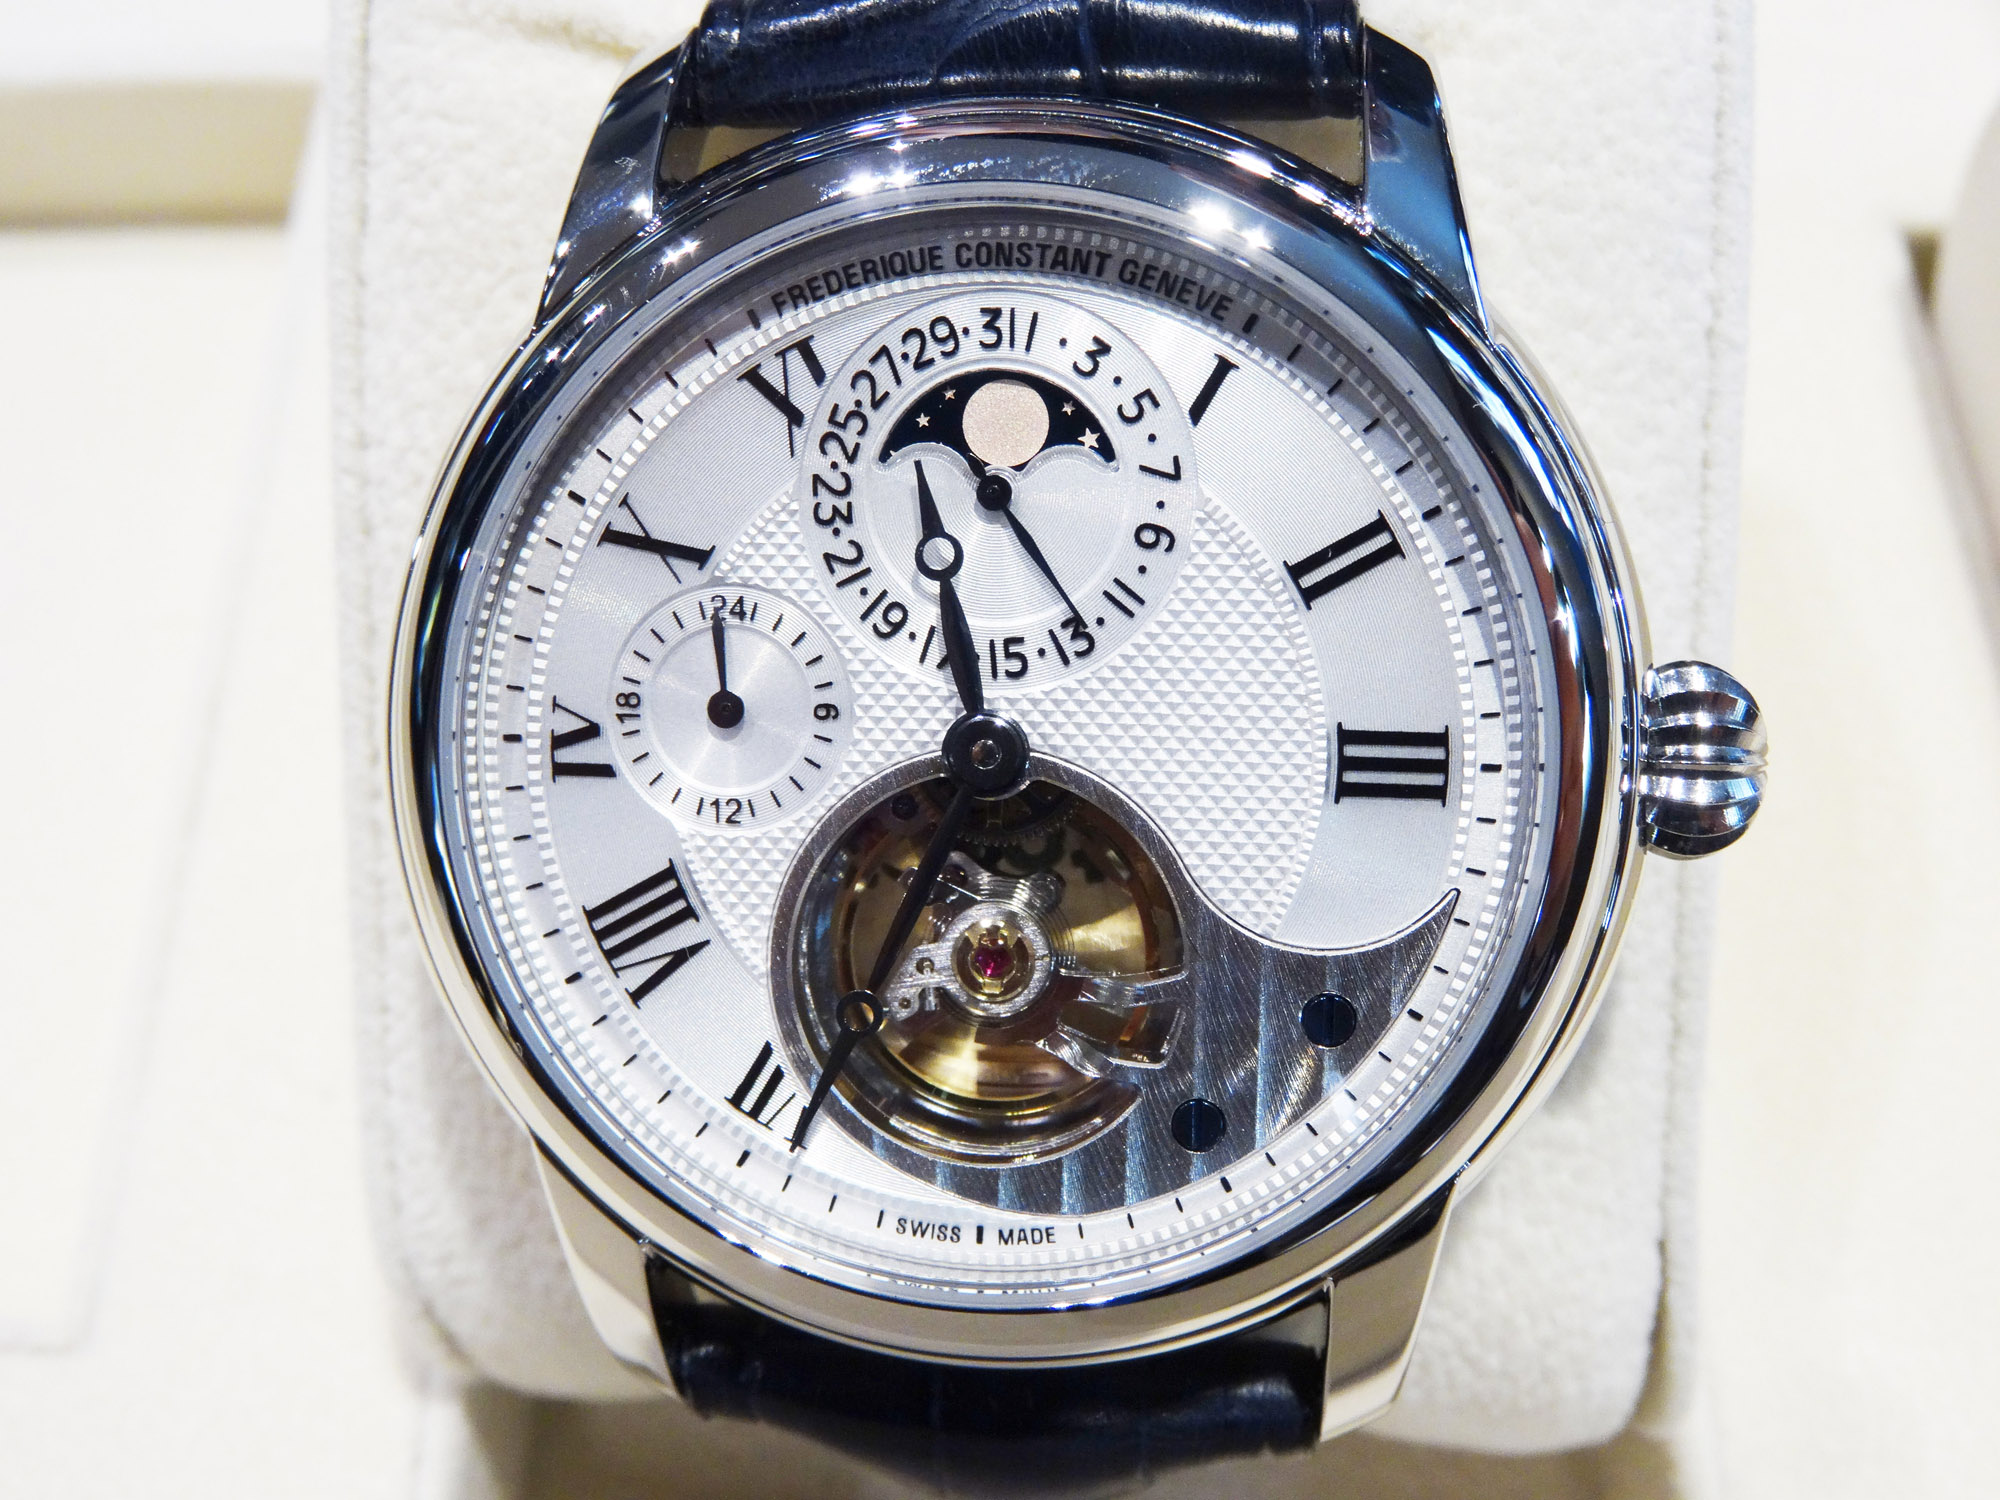 Frederique Constant Heart Beat Manufacture - Baselworld 2014 Photo